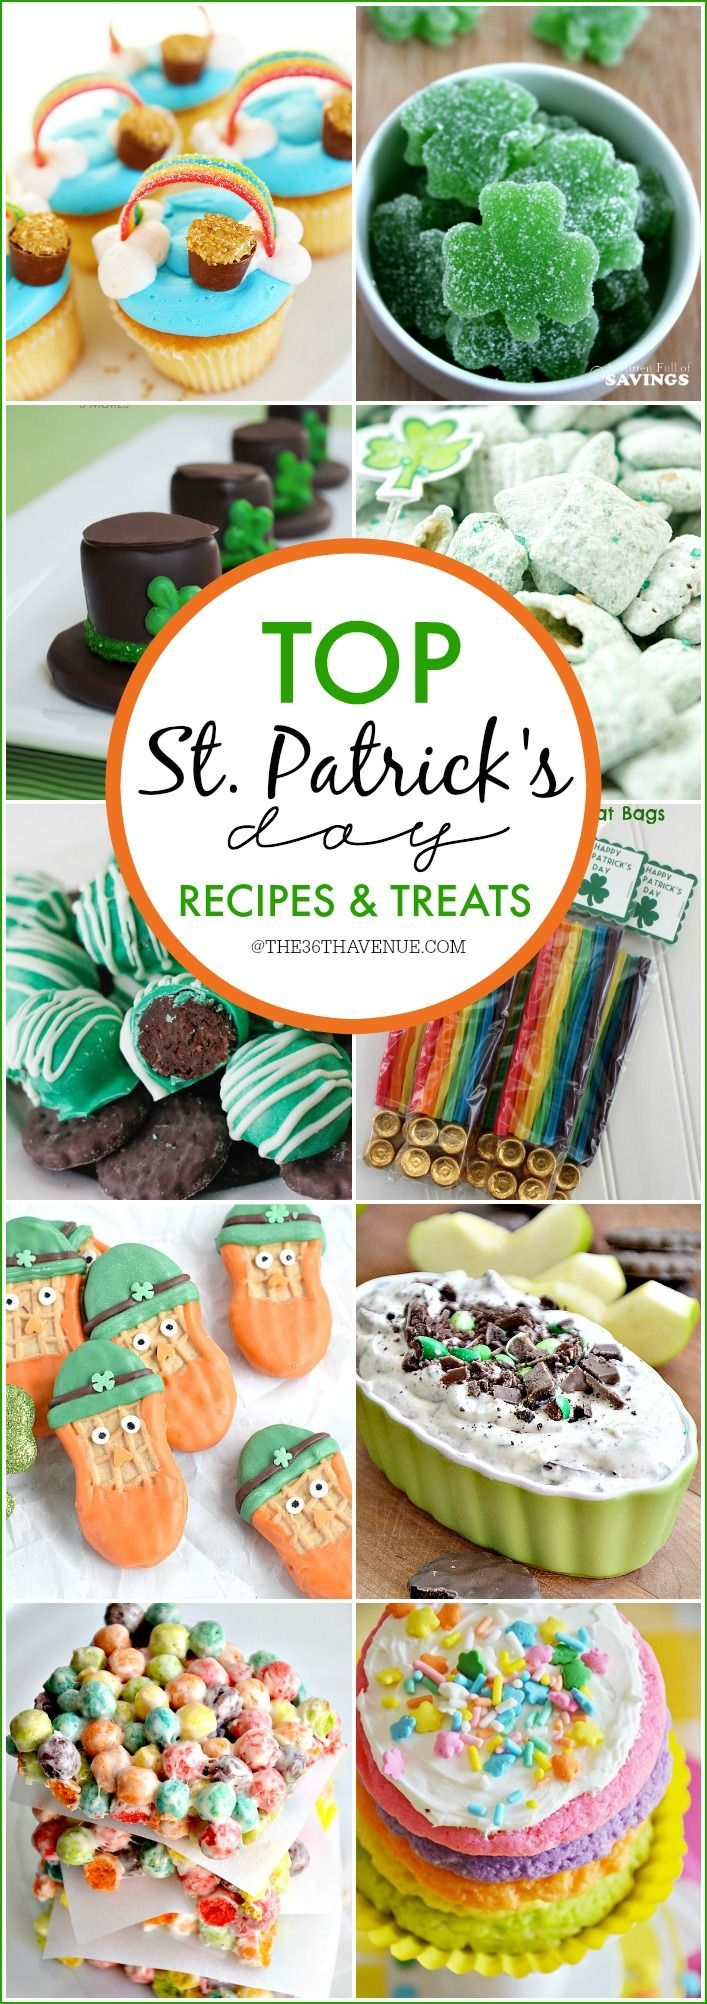 St. Patrick's Day Recipes and Treats - These festive ideas are the cutest recipes ever! PIN IT NOW and make them later!